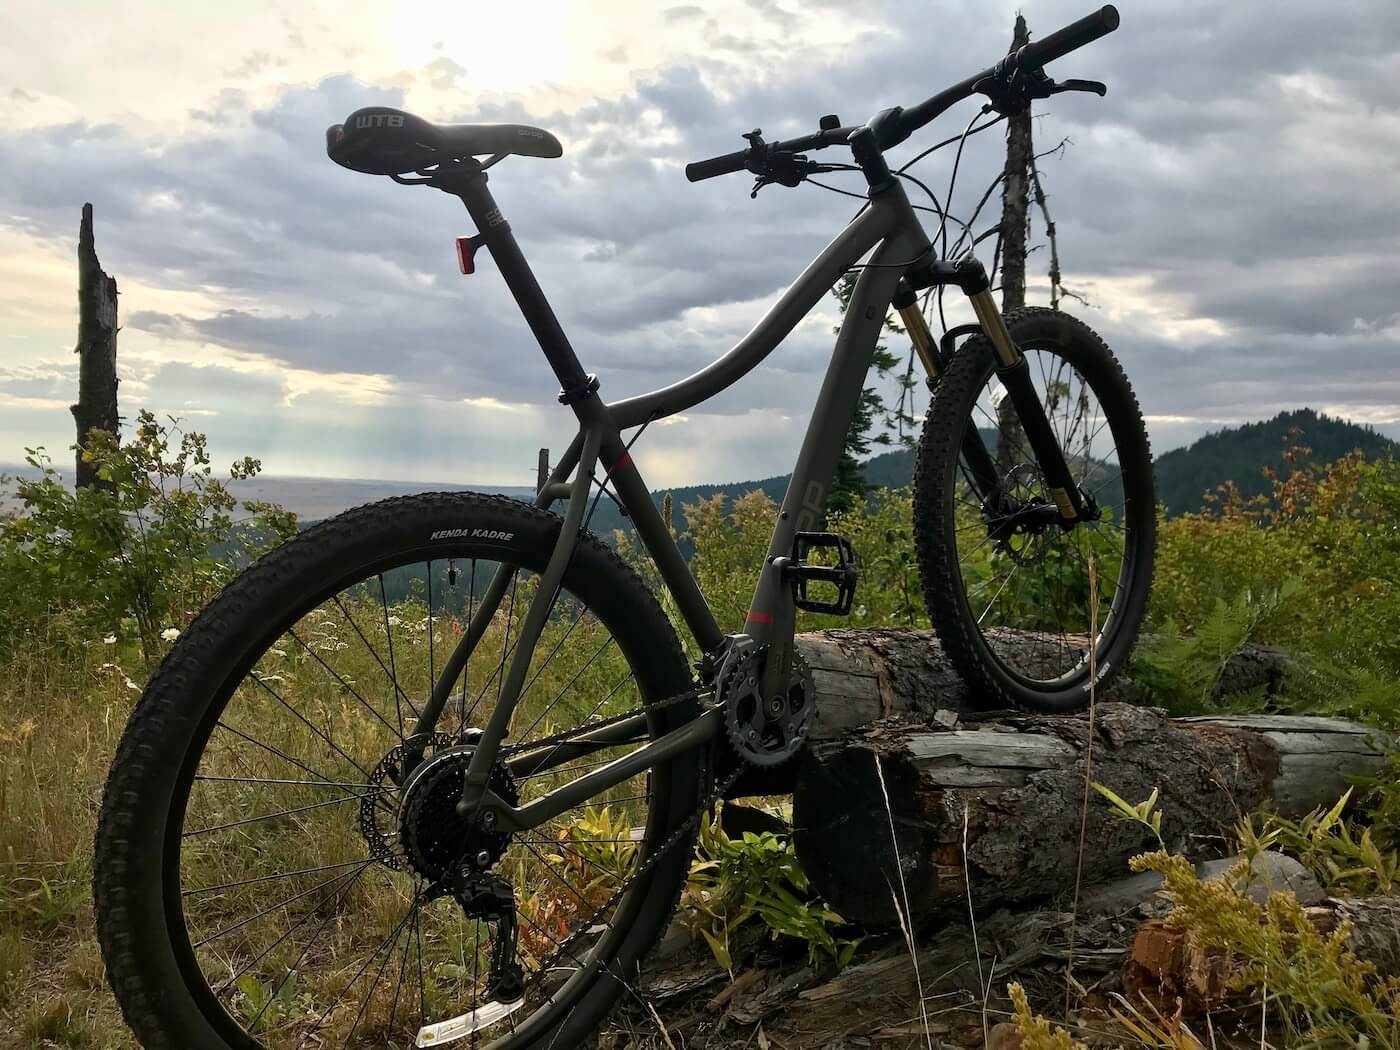 This review photo shows the REI Co-op Cycles DRT 1.2 mountain bike outside.